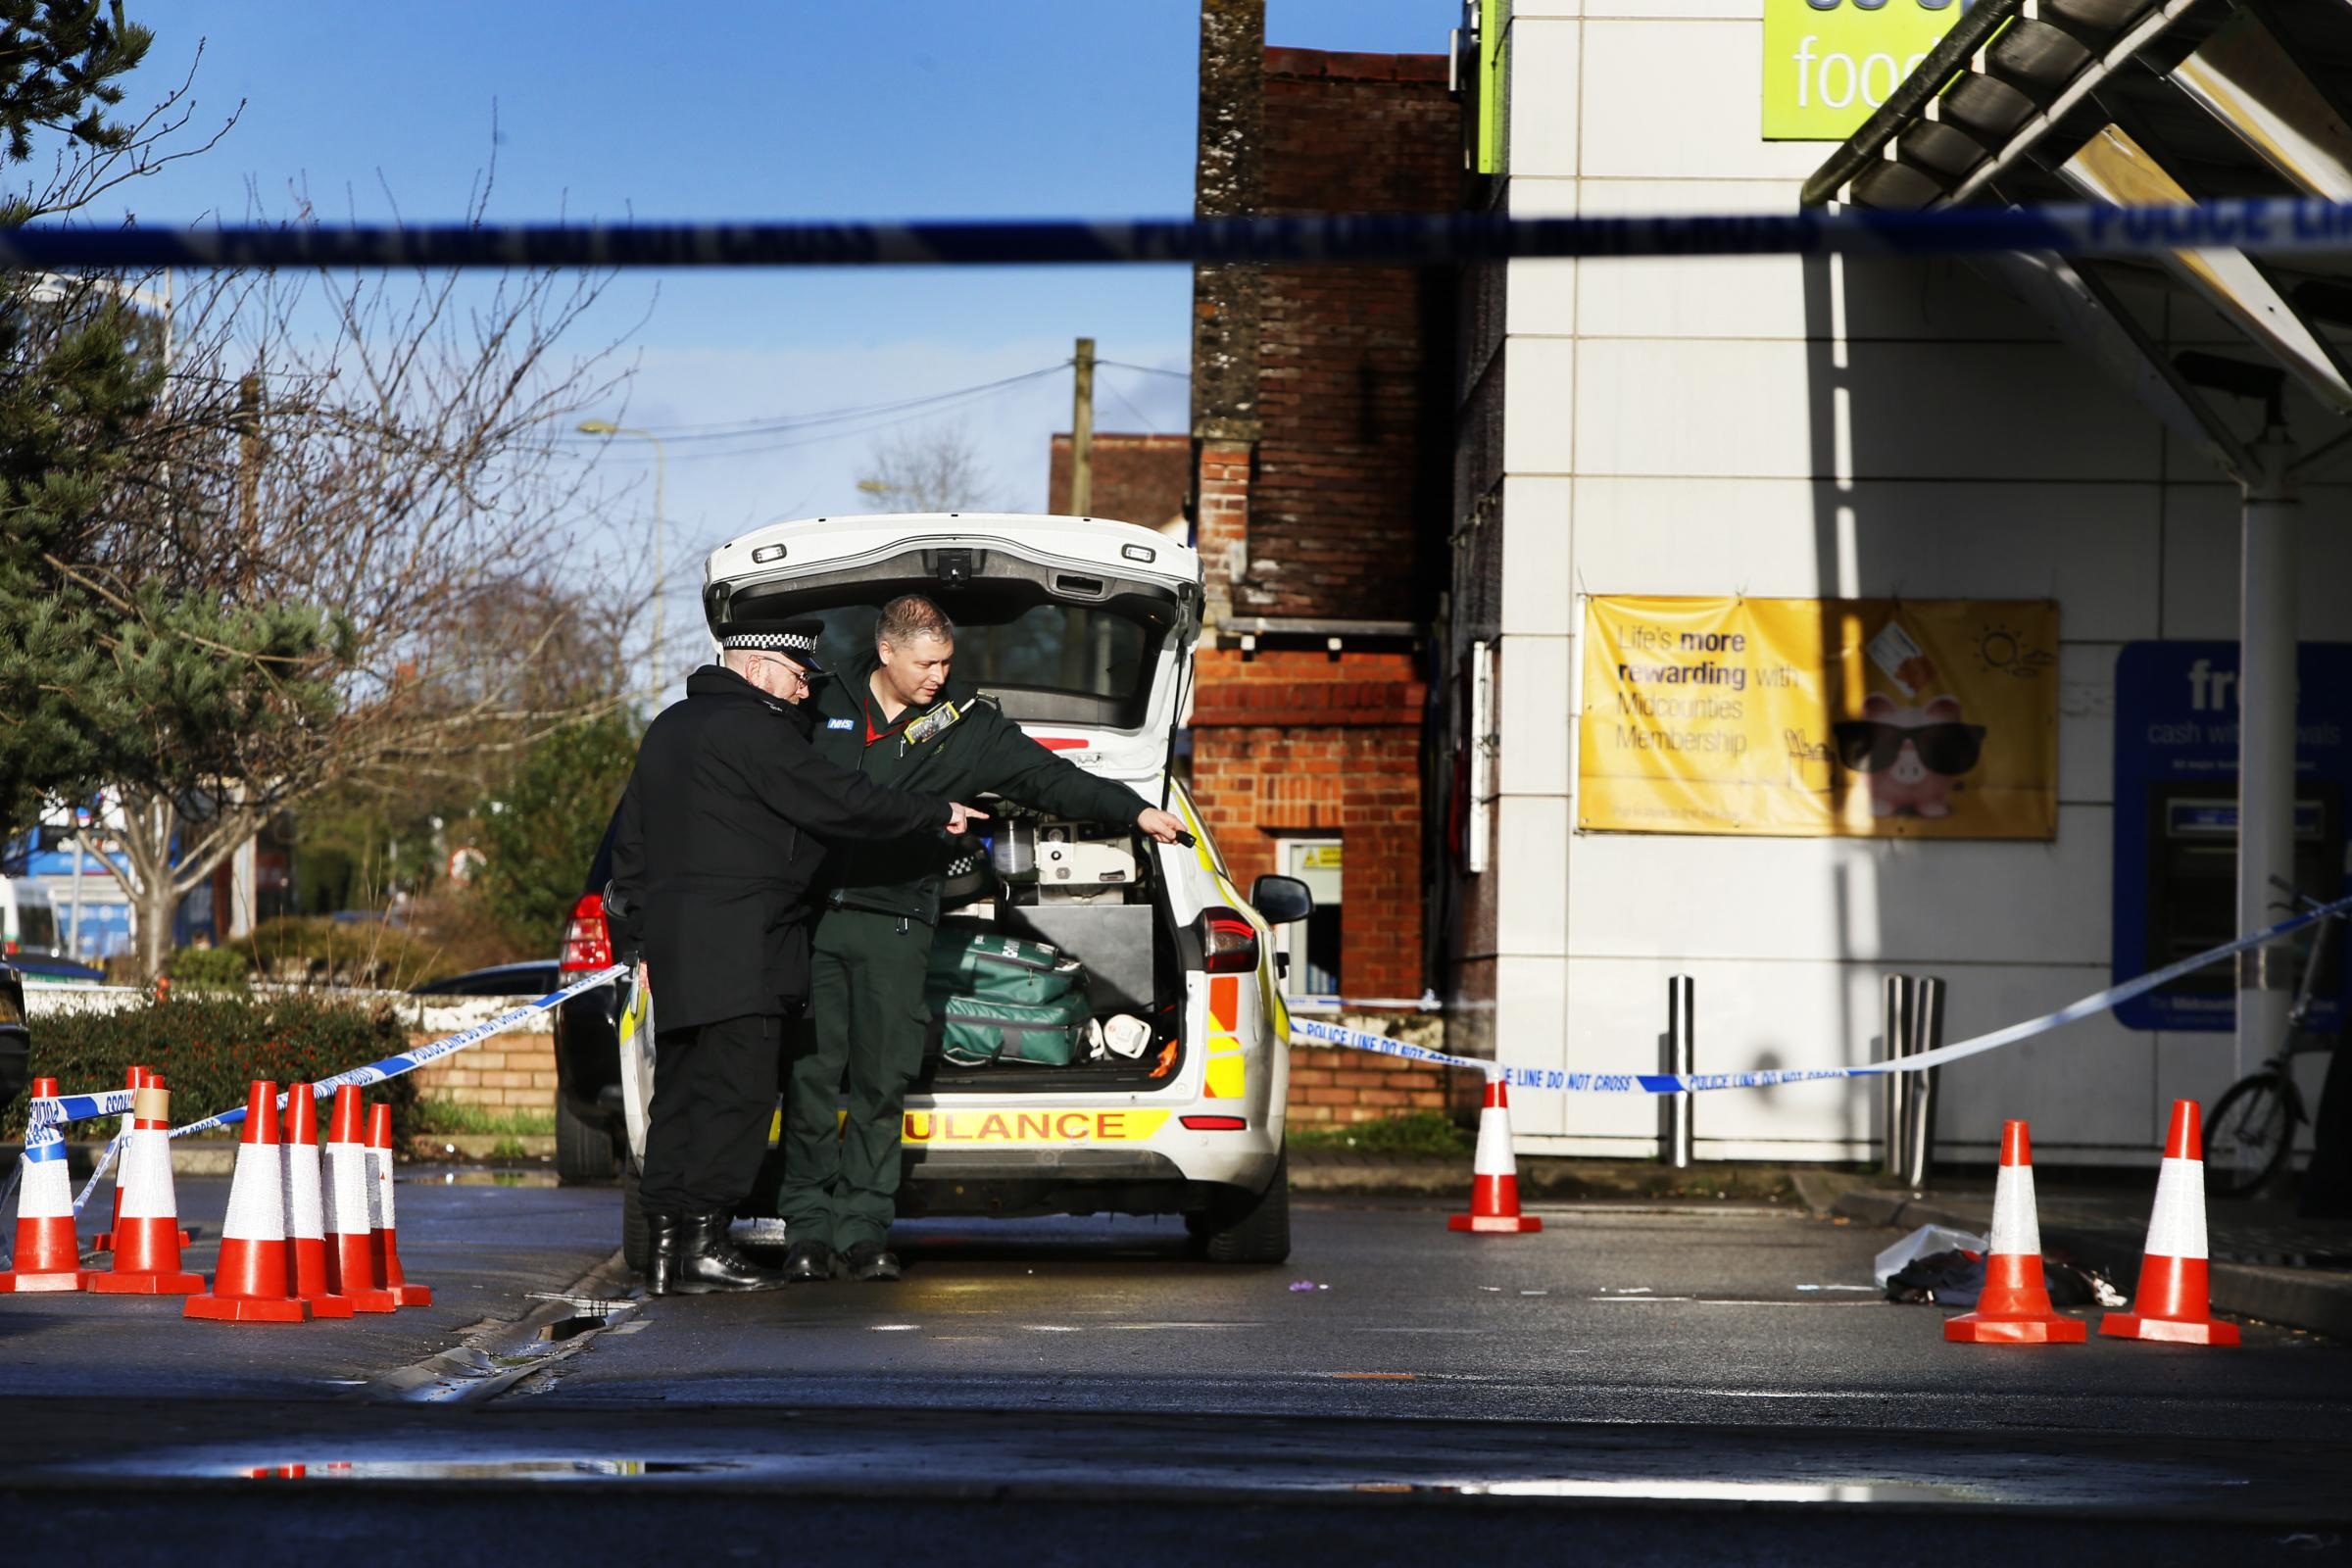 Headington Co-op was closed yesterday afternoon after a woman was reportedly stabbed at 3.10pm